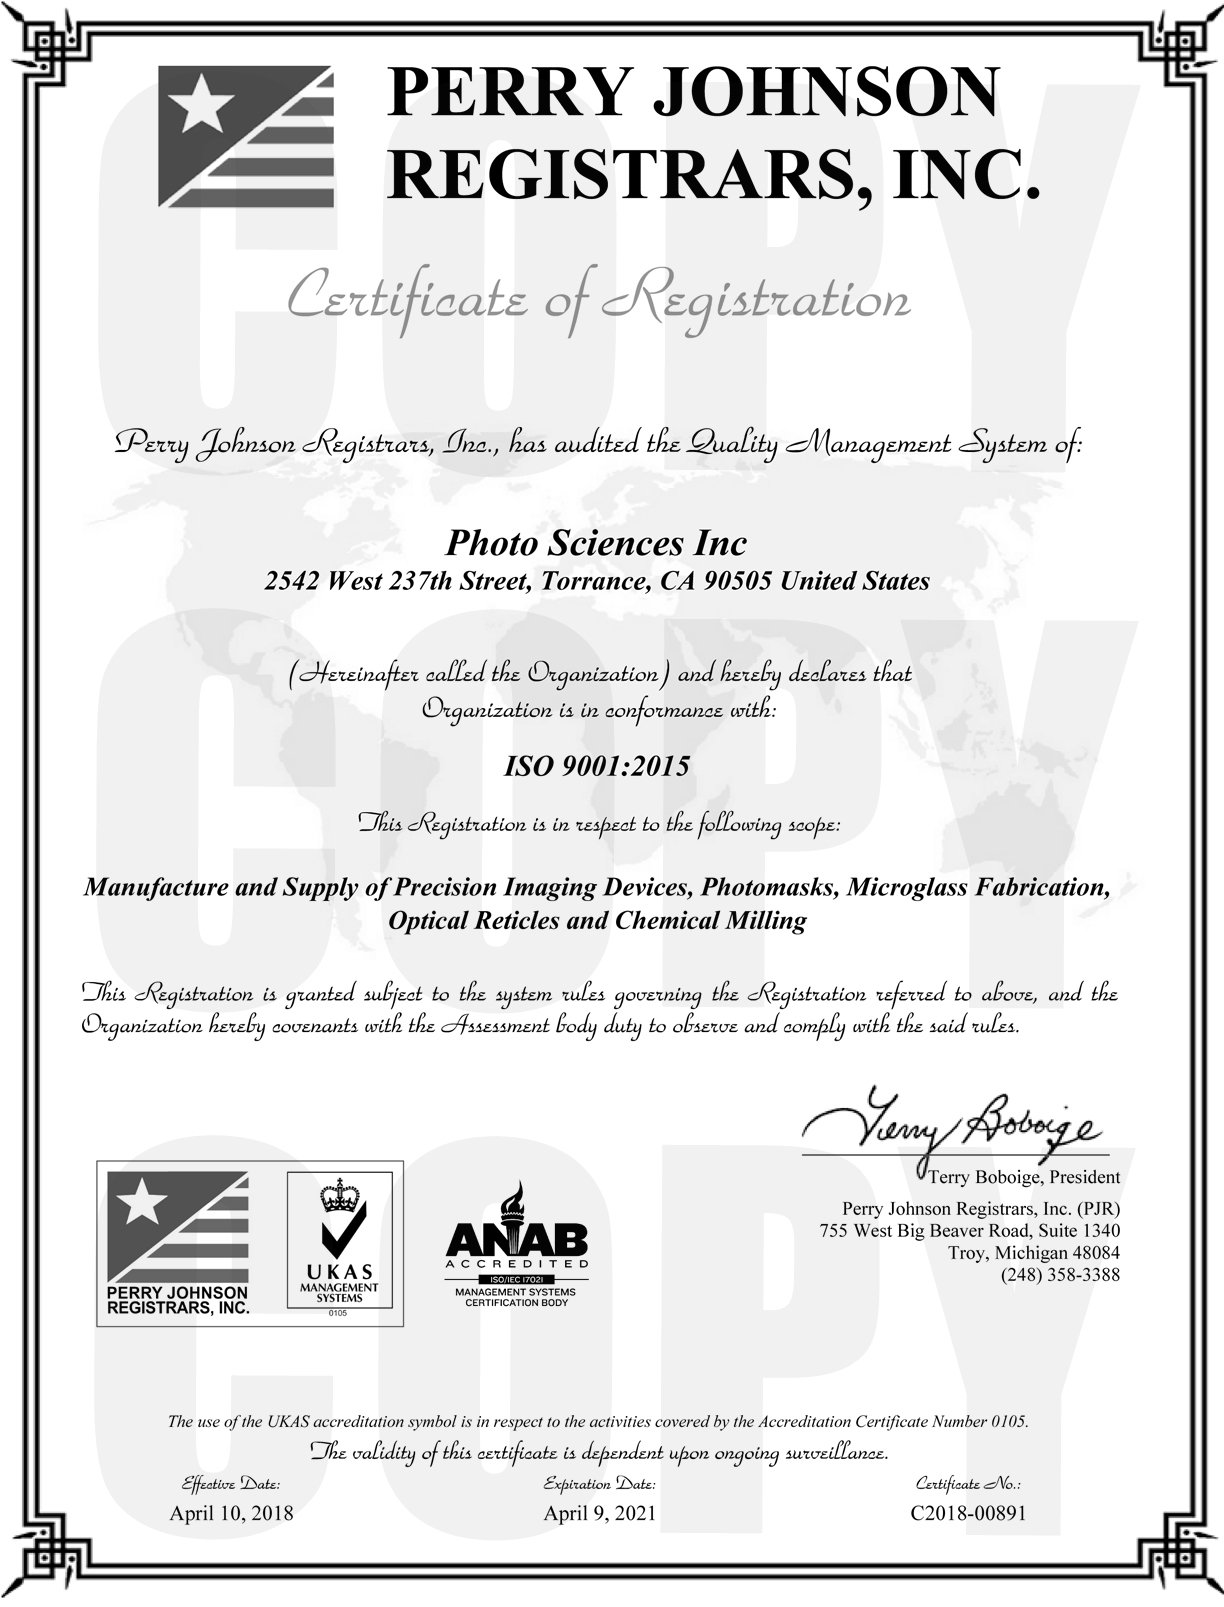 ISO 9001:2008 Registration Certificate